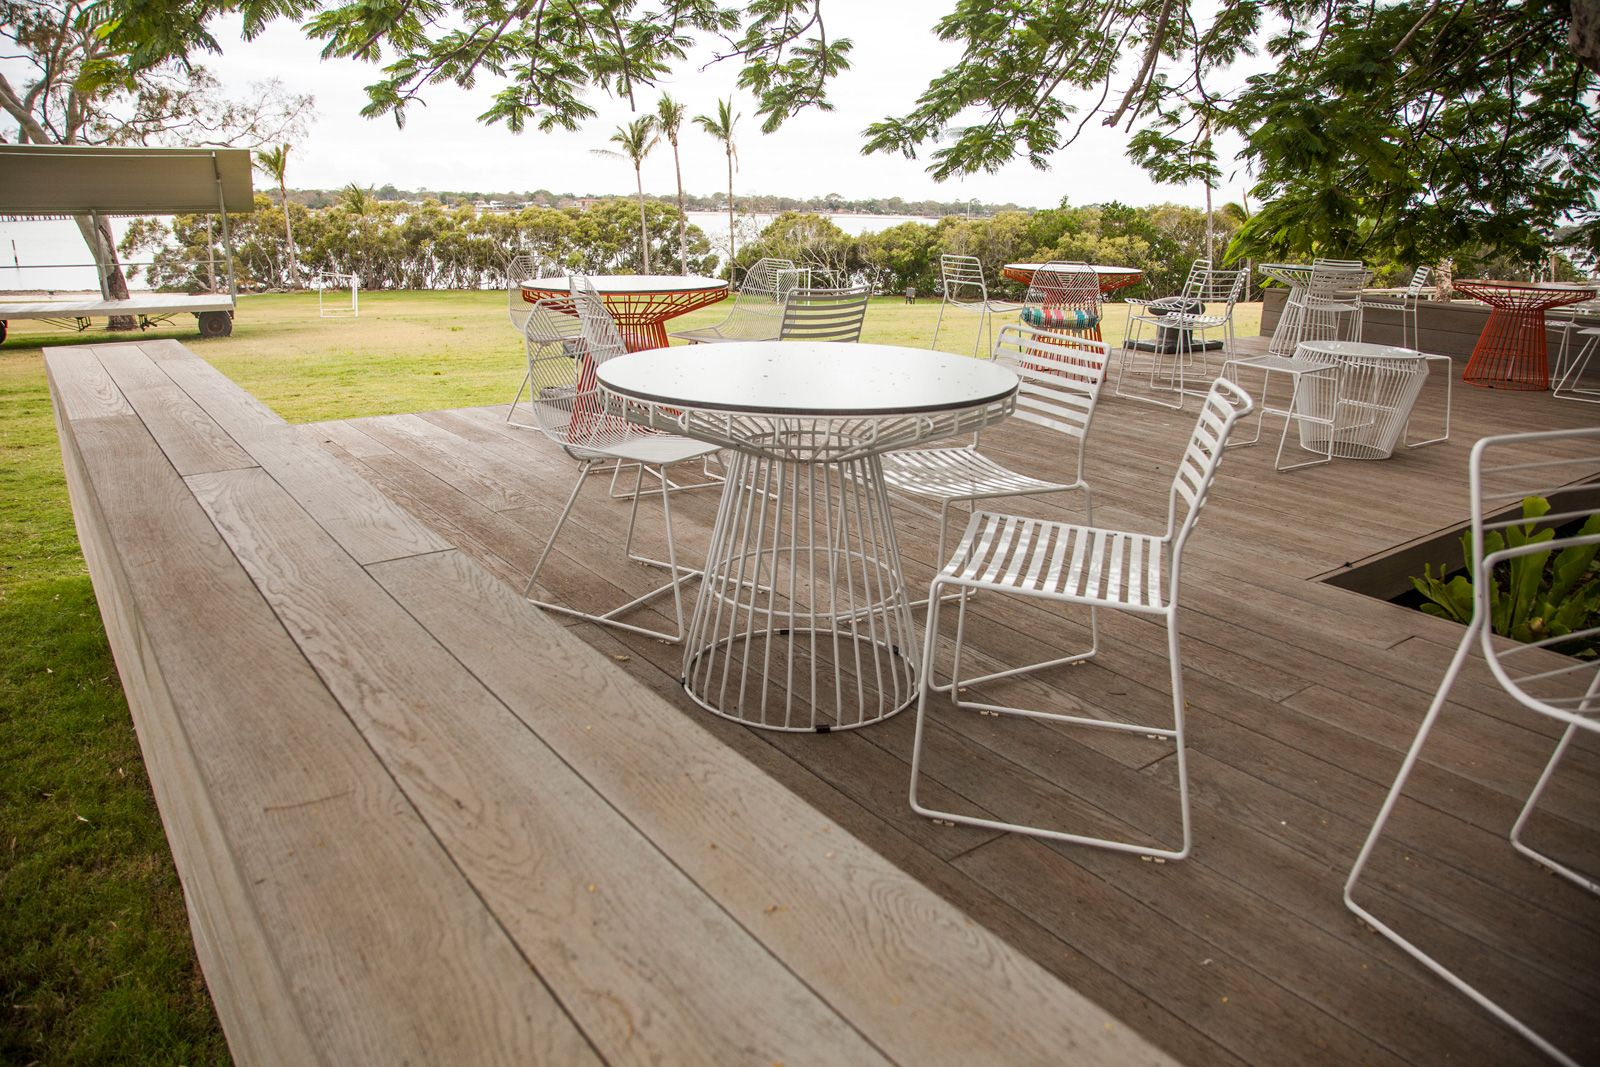 Millboard decking by urbanline composite decking products